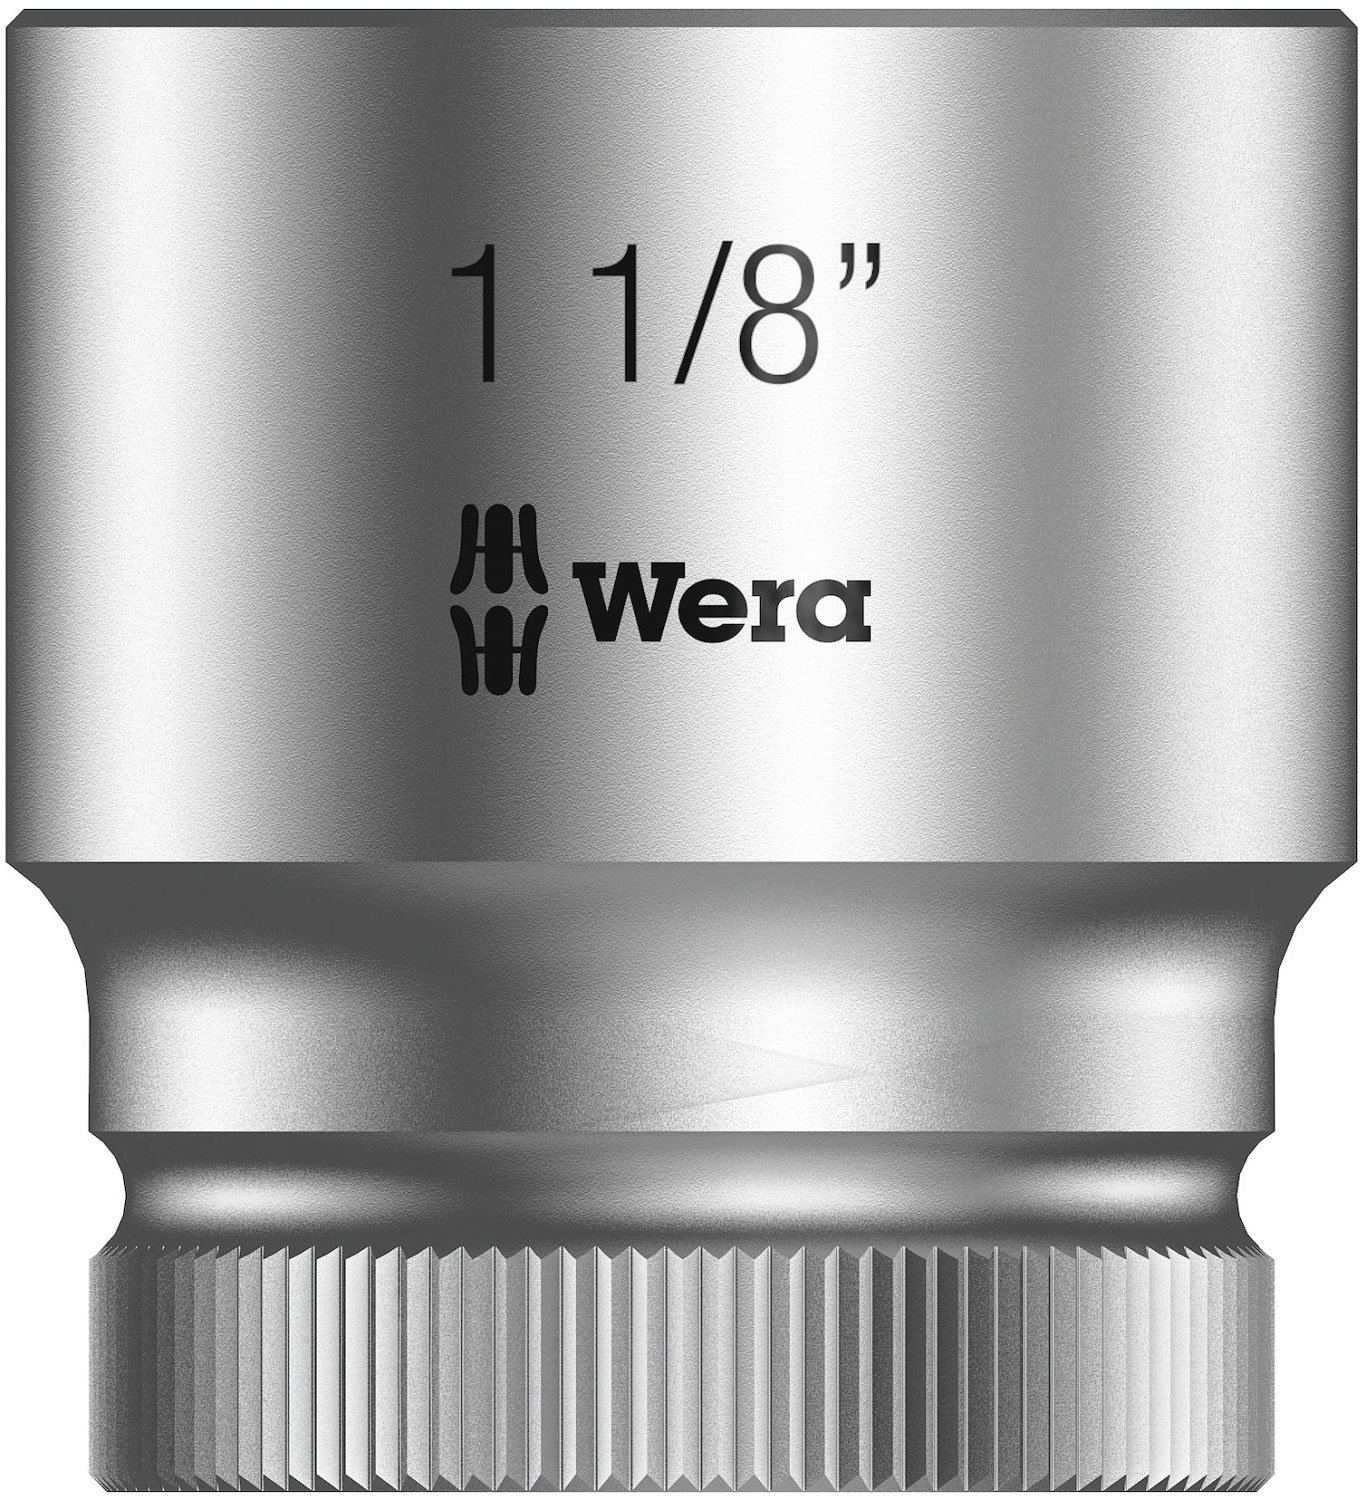 Hex Head 22mm x Length 37mm Wera Zyklop 8790 HMC 1//2-Inch Socket